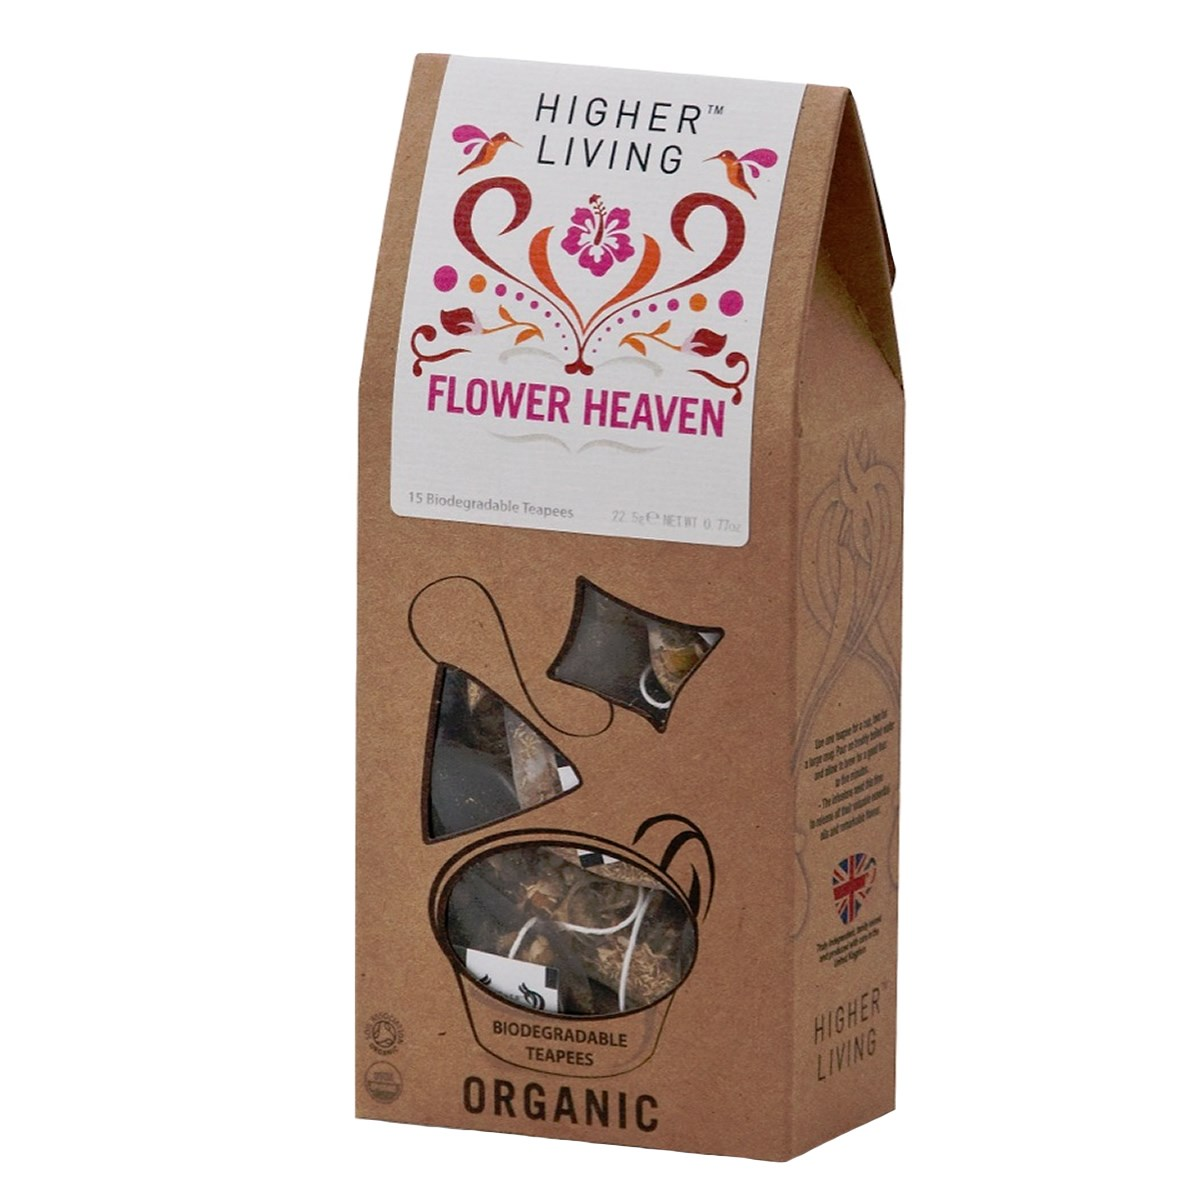 Higher Living Flower Heaven Pyramid Tea